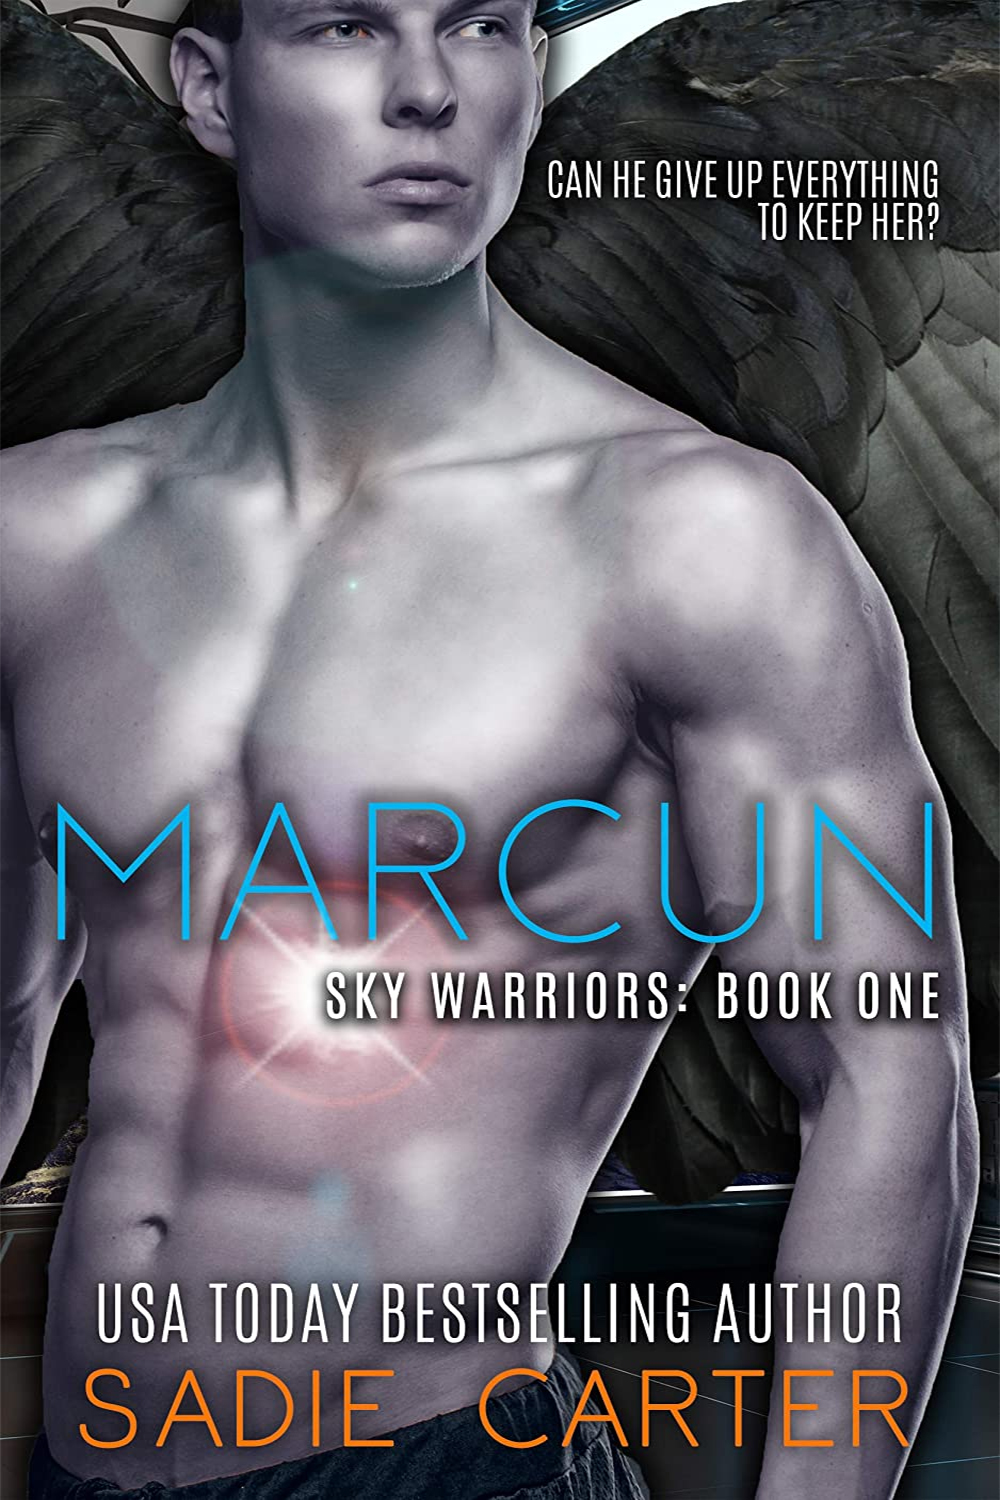 S1 E9 Marcun by Sadie Carter